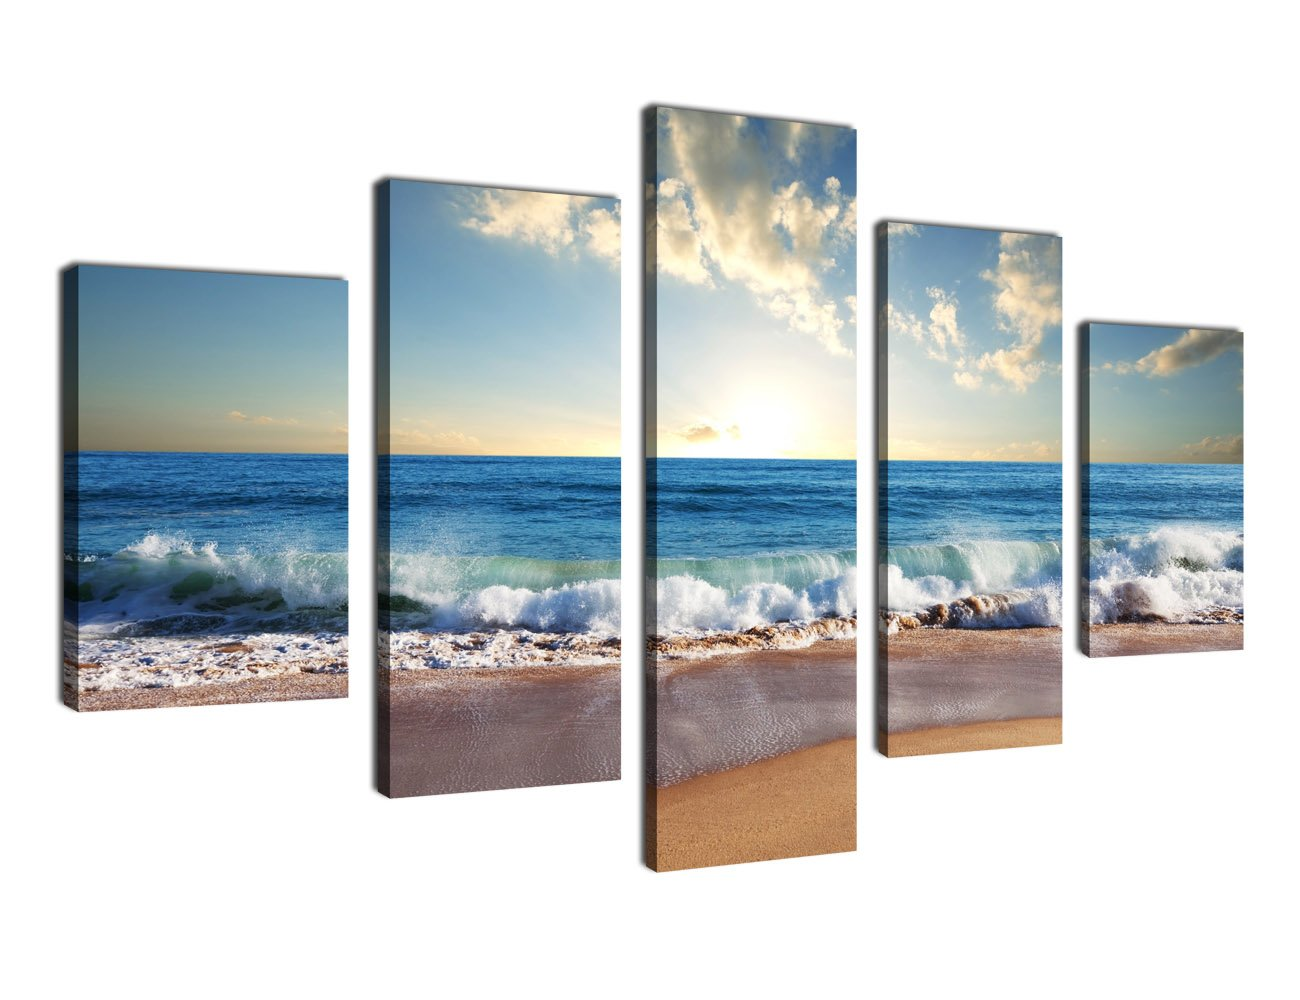 Canvas wall art waves beach canvas art ocean sunset 32 x 60 5 pieces large canvas prints blue sea modern artwork seascape pictures for home